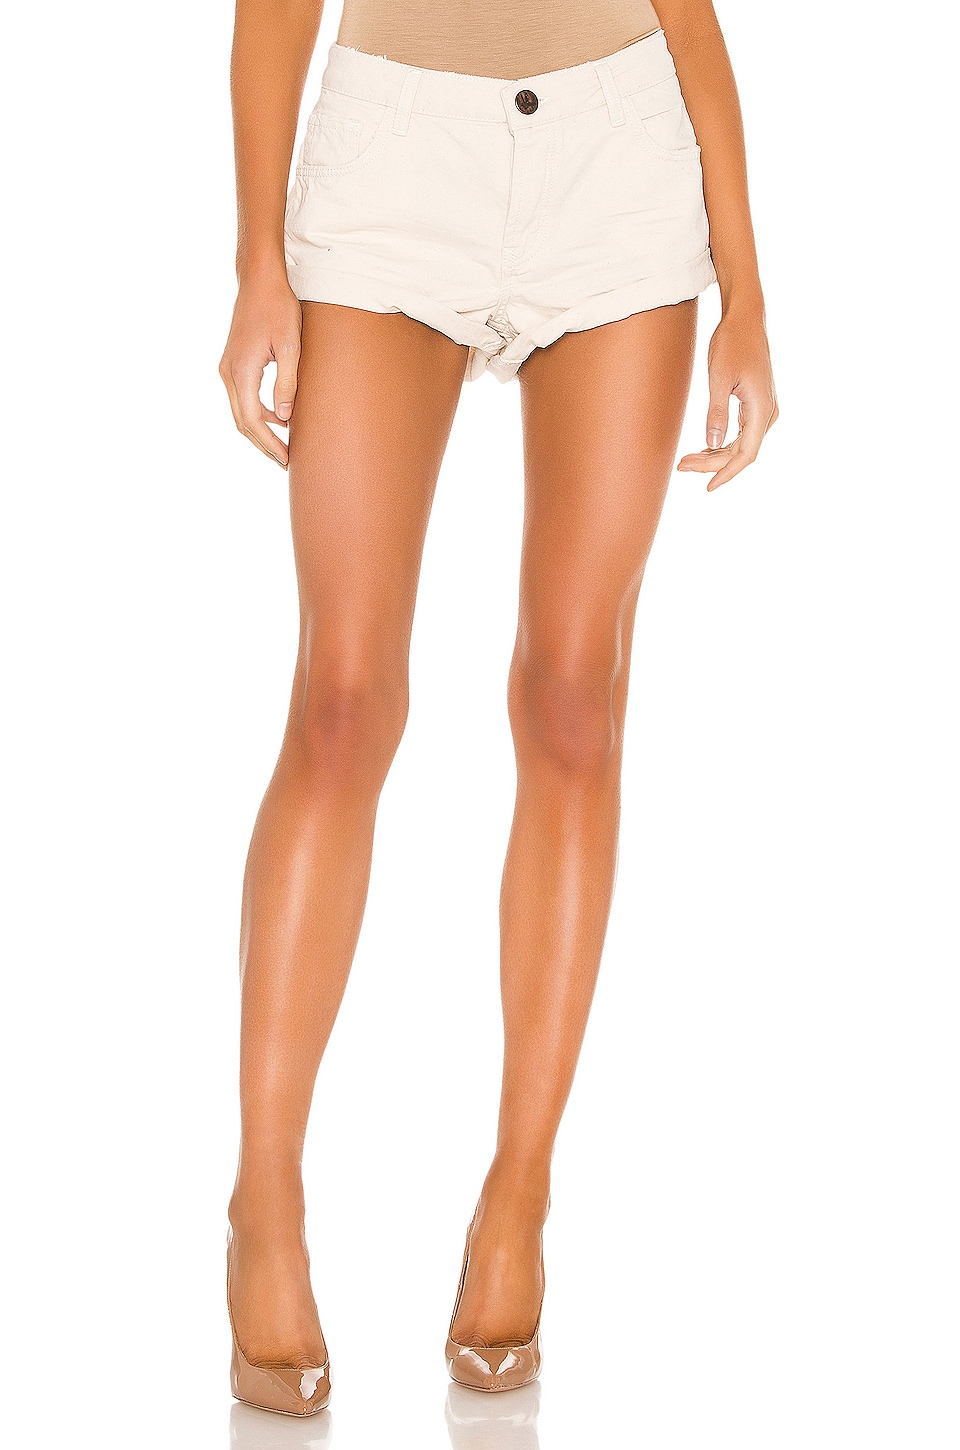 One Teaspoon Bandits Denim Short in Nashville Cream